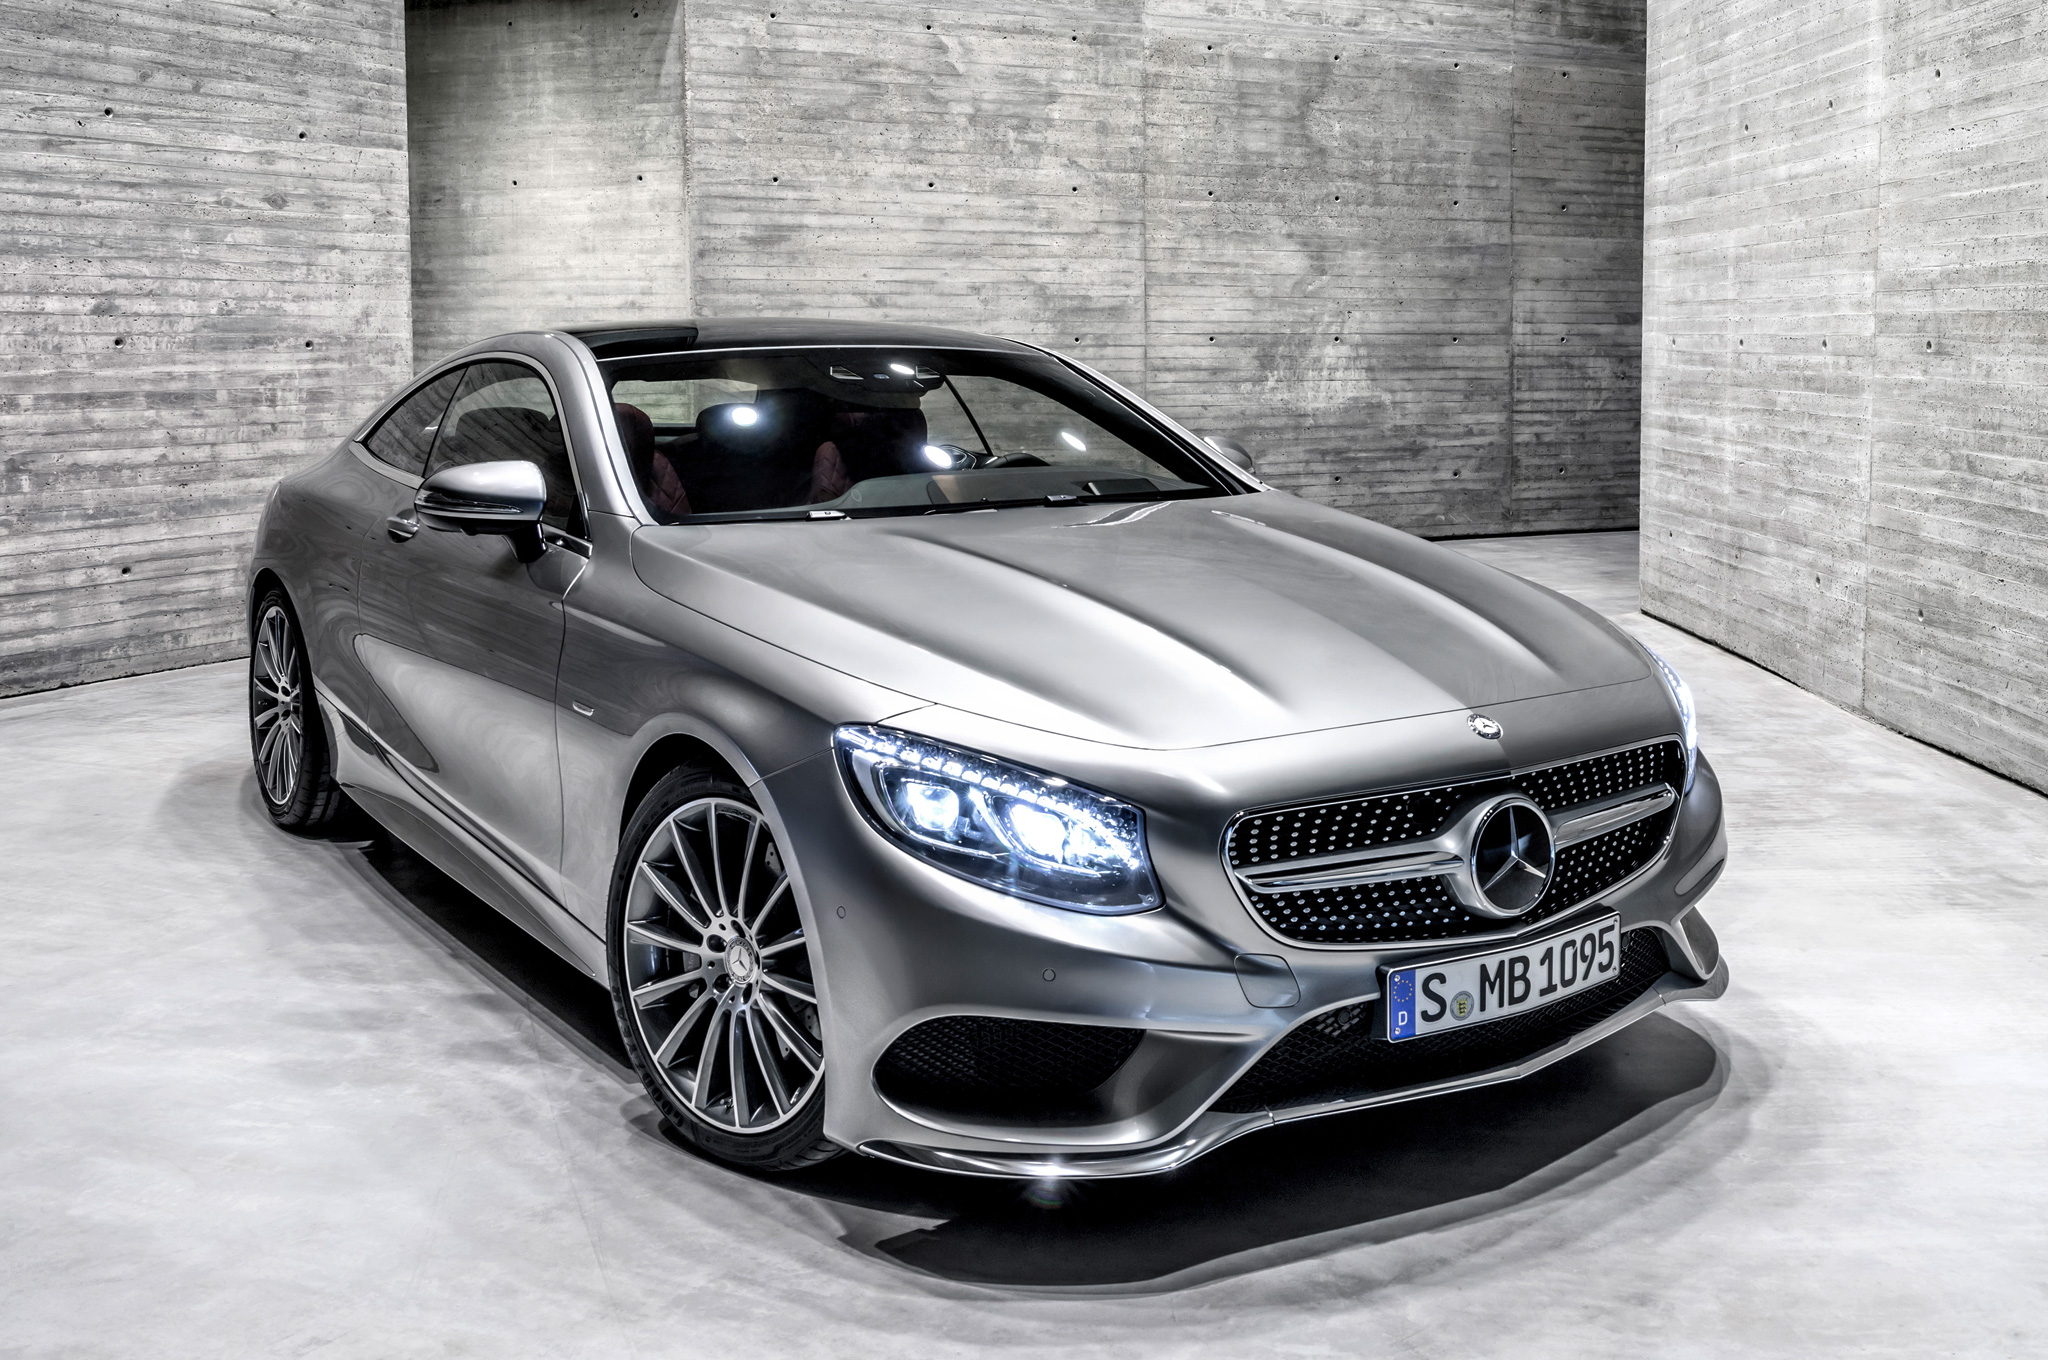 2015 Mercedes-Benz S-Class Coupe Lights On